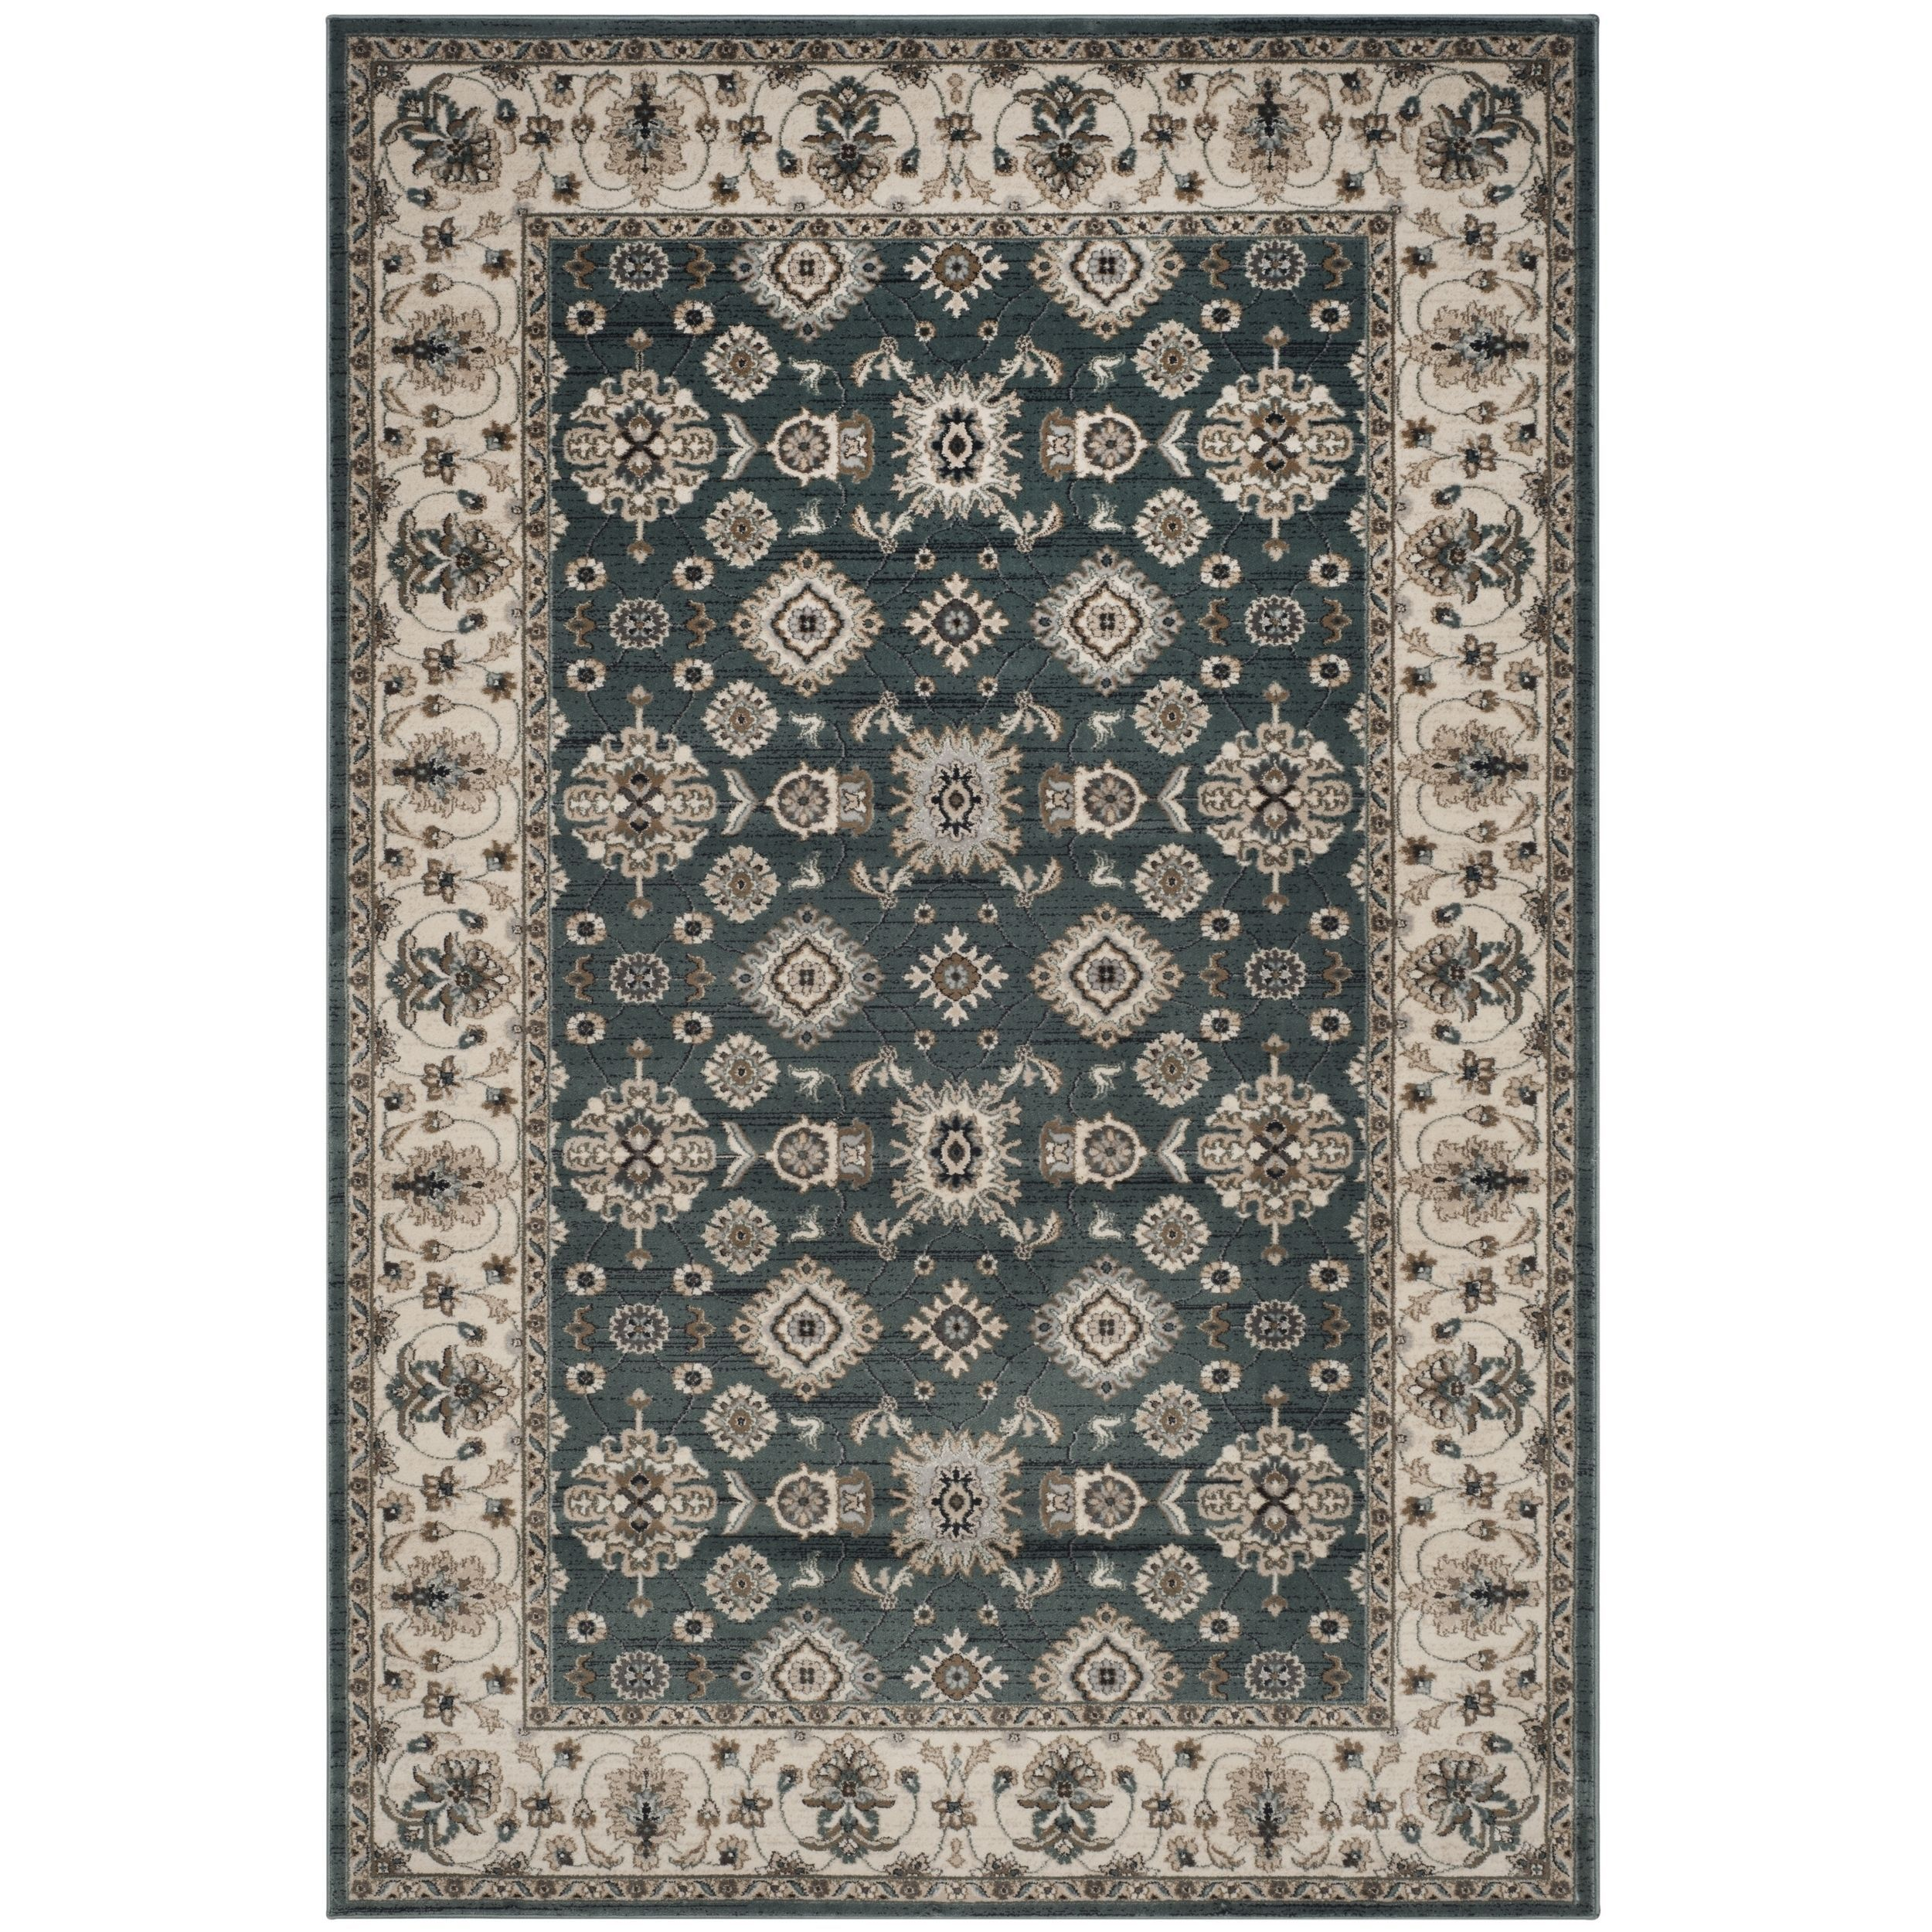 Safavieh Lyndhurst Traditional Oriental Teal Blue Cream Rug 8 X 10 Lnh332t 810 Size